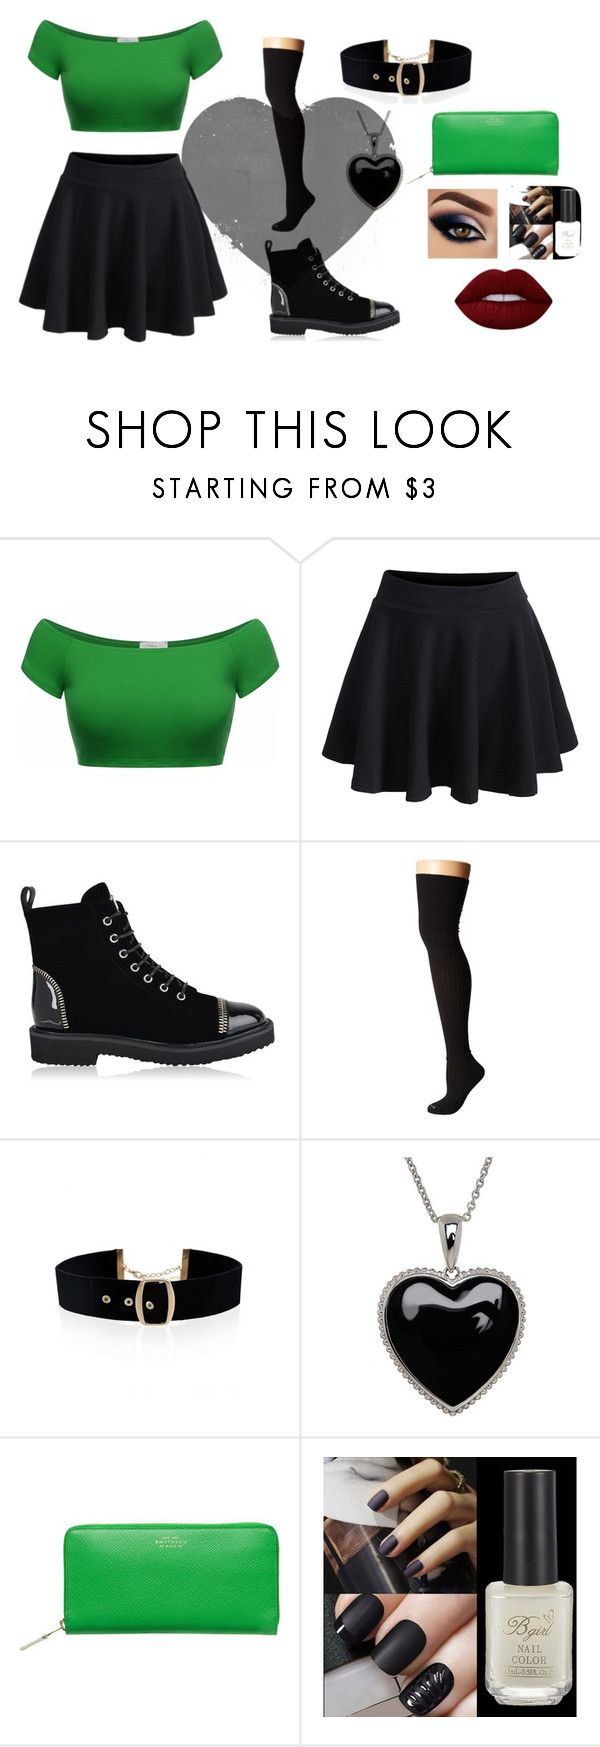 """""""N's Bar Clothes!"""" by nityadreemurr ❤ liked on Polyvore featuring WithChic, Giuseppe Zanotti, Bootights, Lord & Taylor, Smythson and Lime Crime"""